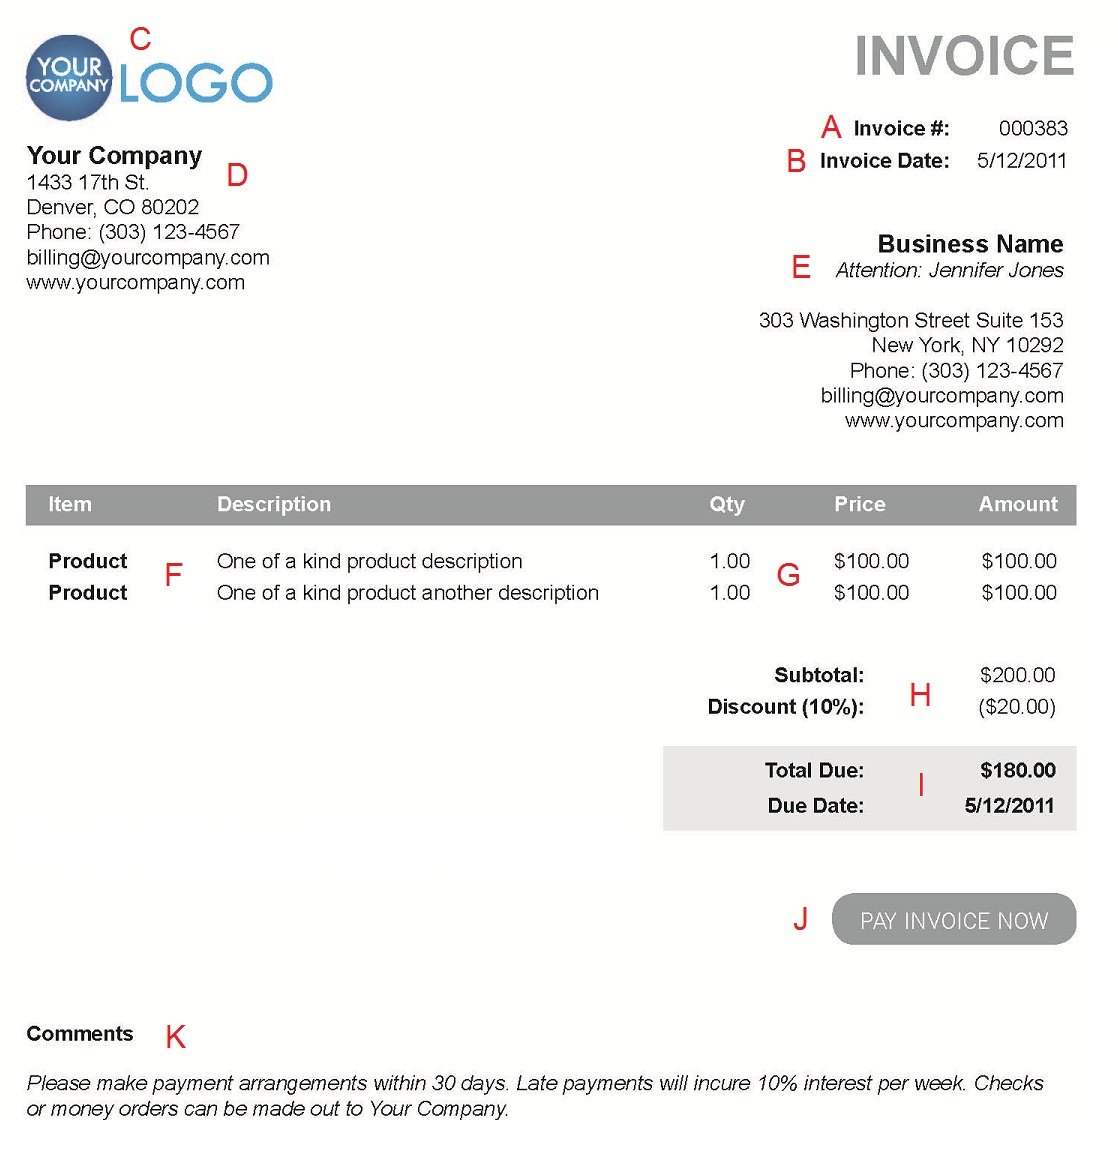 Hucareus  Gorgeous The  Different Sections Of An Electronic Payment Invoice With Magnificent A  With Amazing Mac Invoicing Also Invoice Template Self Employed In Addition Simply Invoice And Payment Without Invoice As Well As Computer Invoice Template Additionally Sample Invoice Terms From Paysimplecom With Hucareus  Magnificent The  Different Sections Of An Electronic Payment Invoice With Amazing A  And Gorgeous Mac Invoicing Also Invoice Template Self Employed In Addition Simply Invoice From Paysimplecom